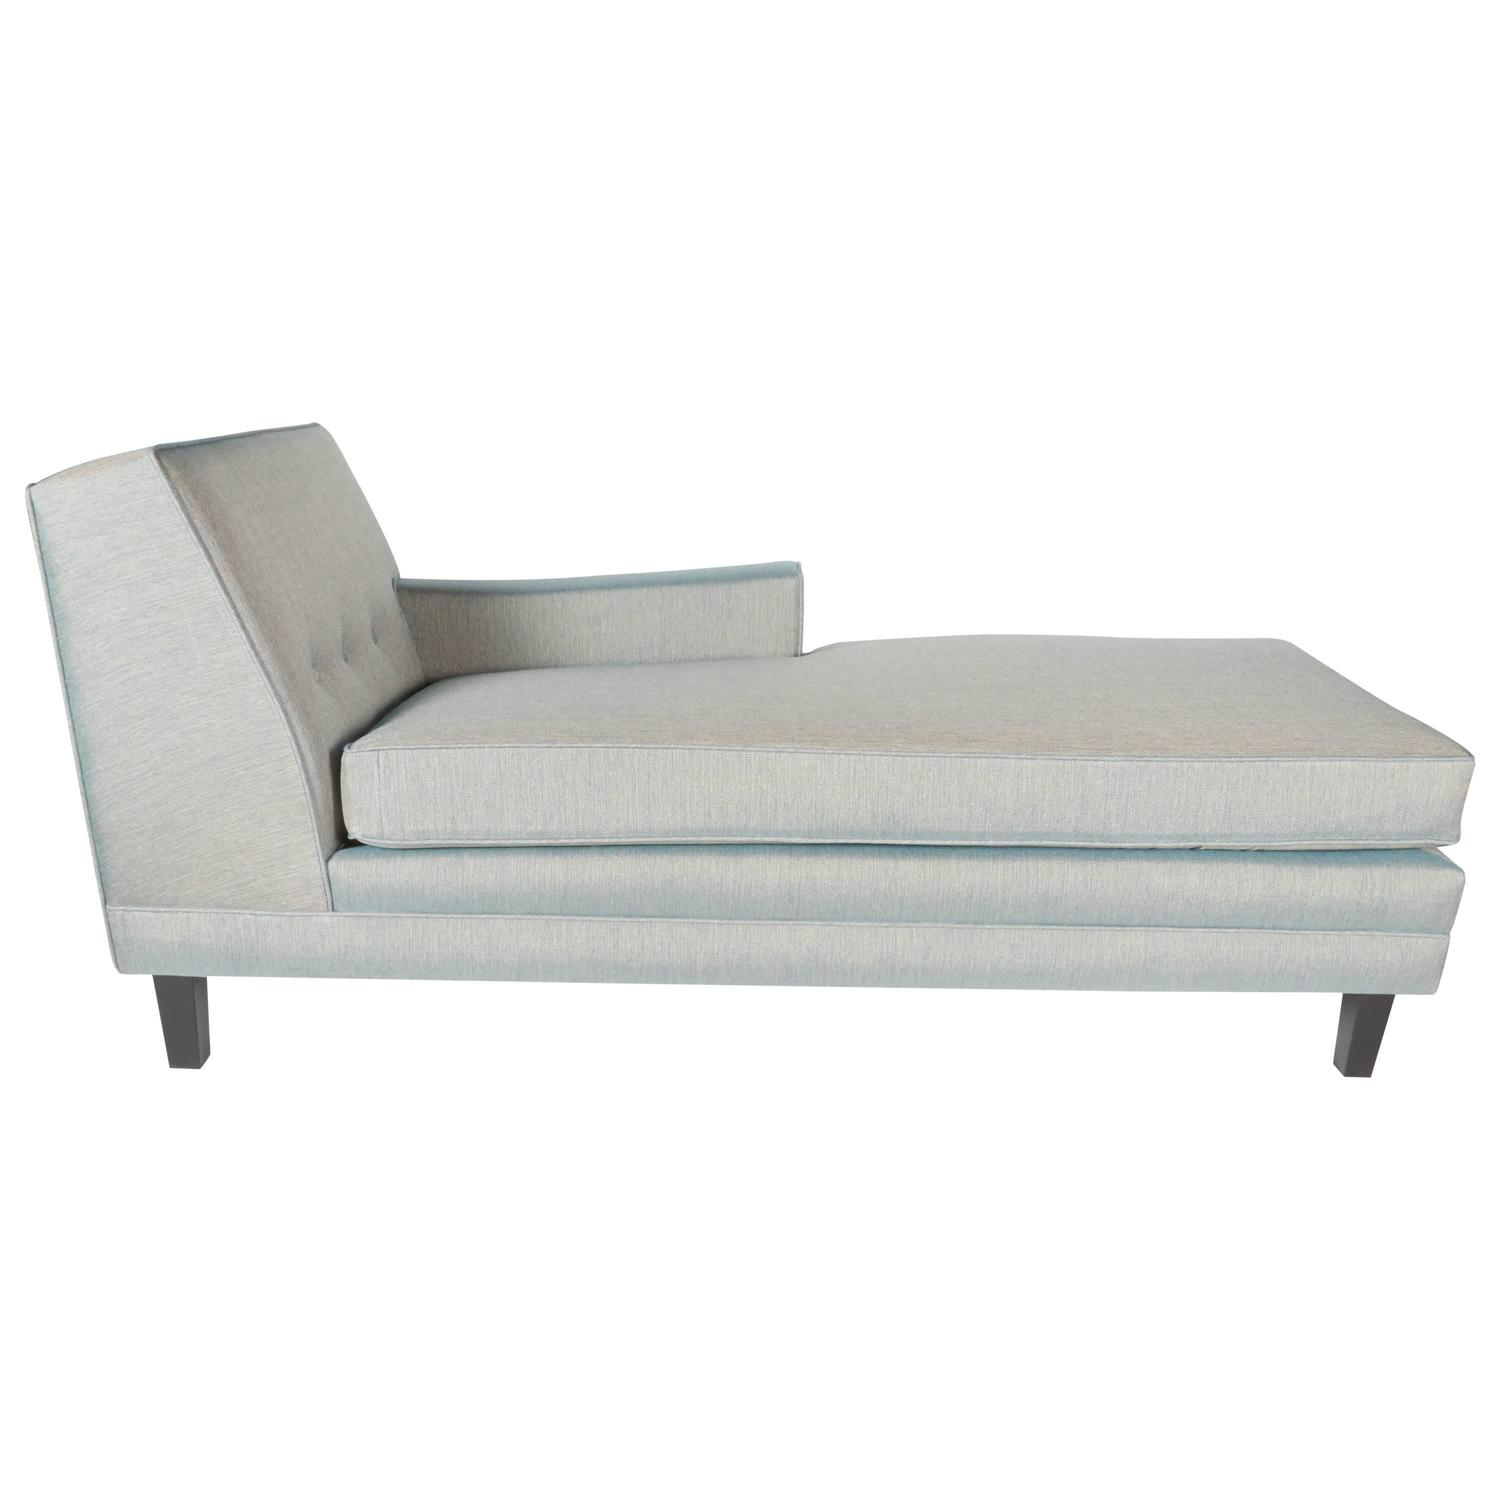 Mid-Century Modern Chaise Lounge with Low Profile Design at 1stdibs